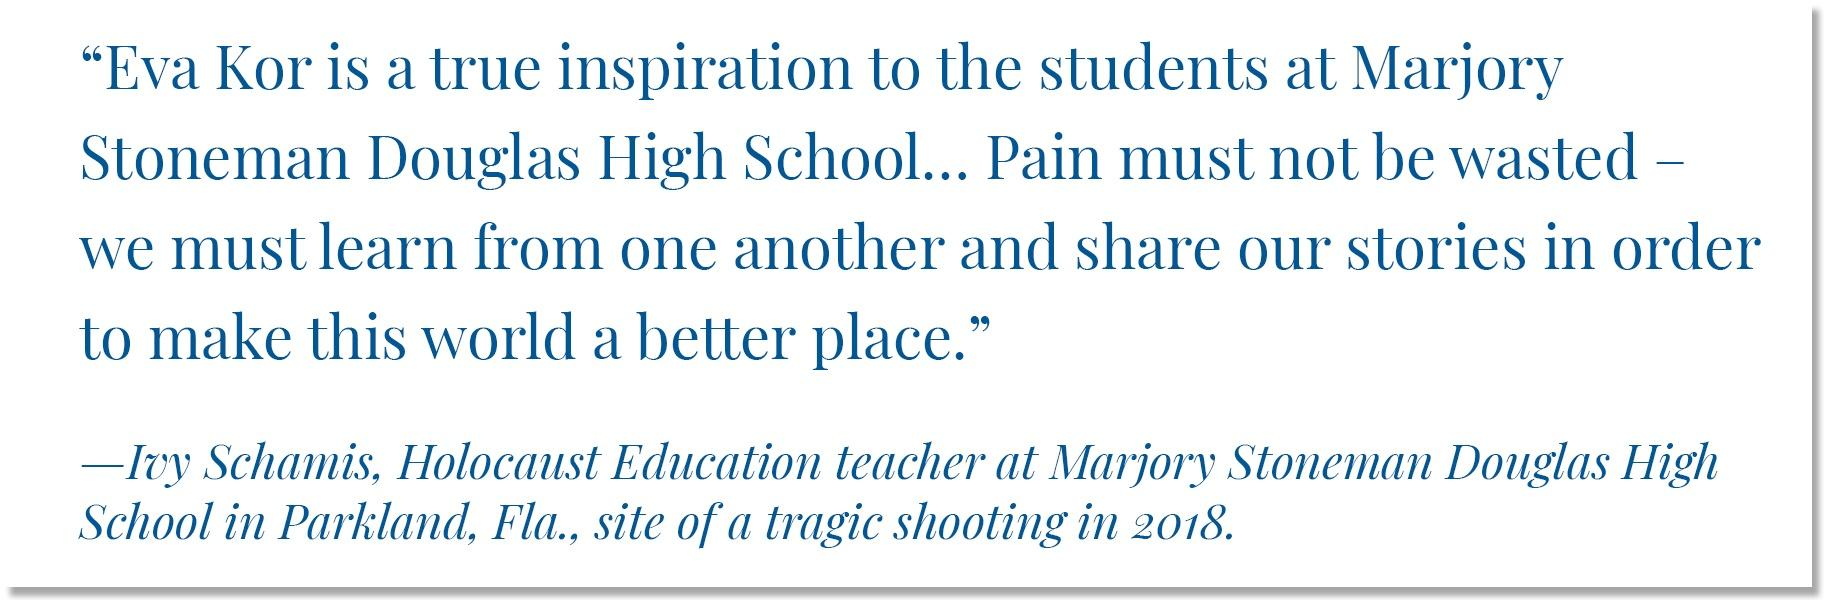 """""""Eva Kor is a true inspiration to the students at Marjory Stoneman Douglas High School… Pain must not be wasted – we must learn from one another and share our stories in order to make this world a better place."""" •—Ivy Schamis, Holocaust Education teacher at Marjory Stoneman Douglas High School in Parkland, Fla., site of a tragic shooting in 2018."""